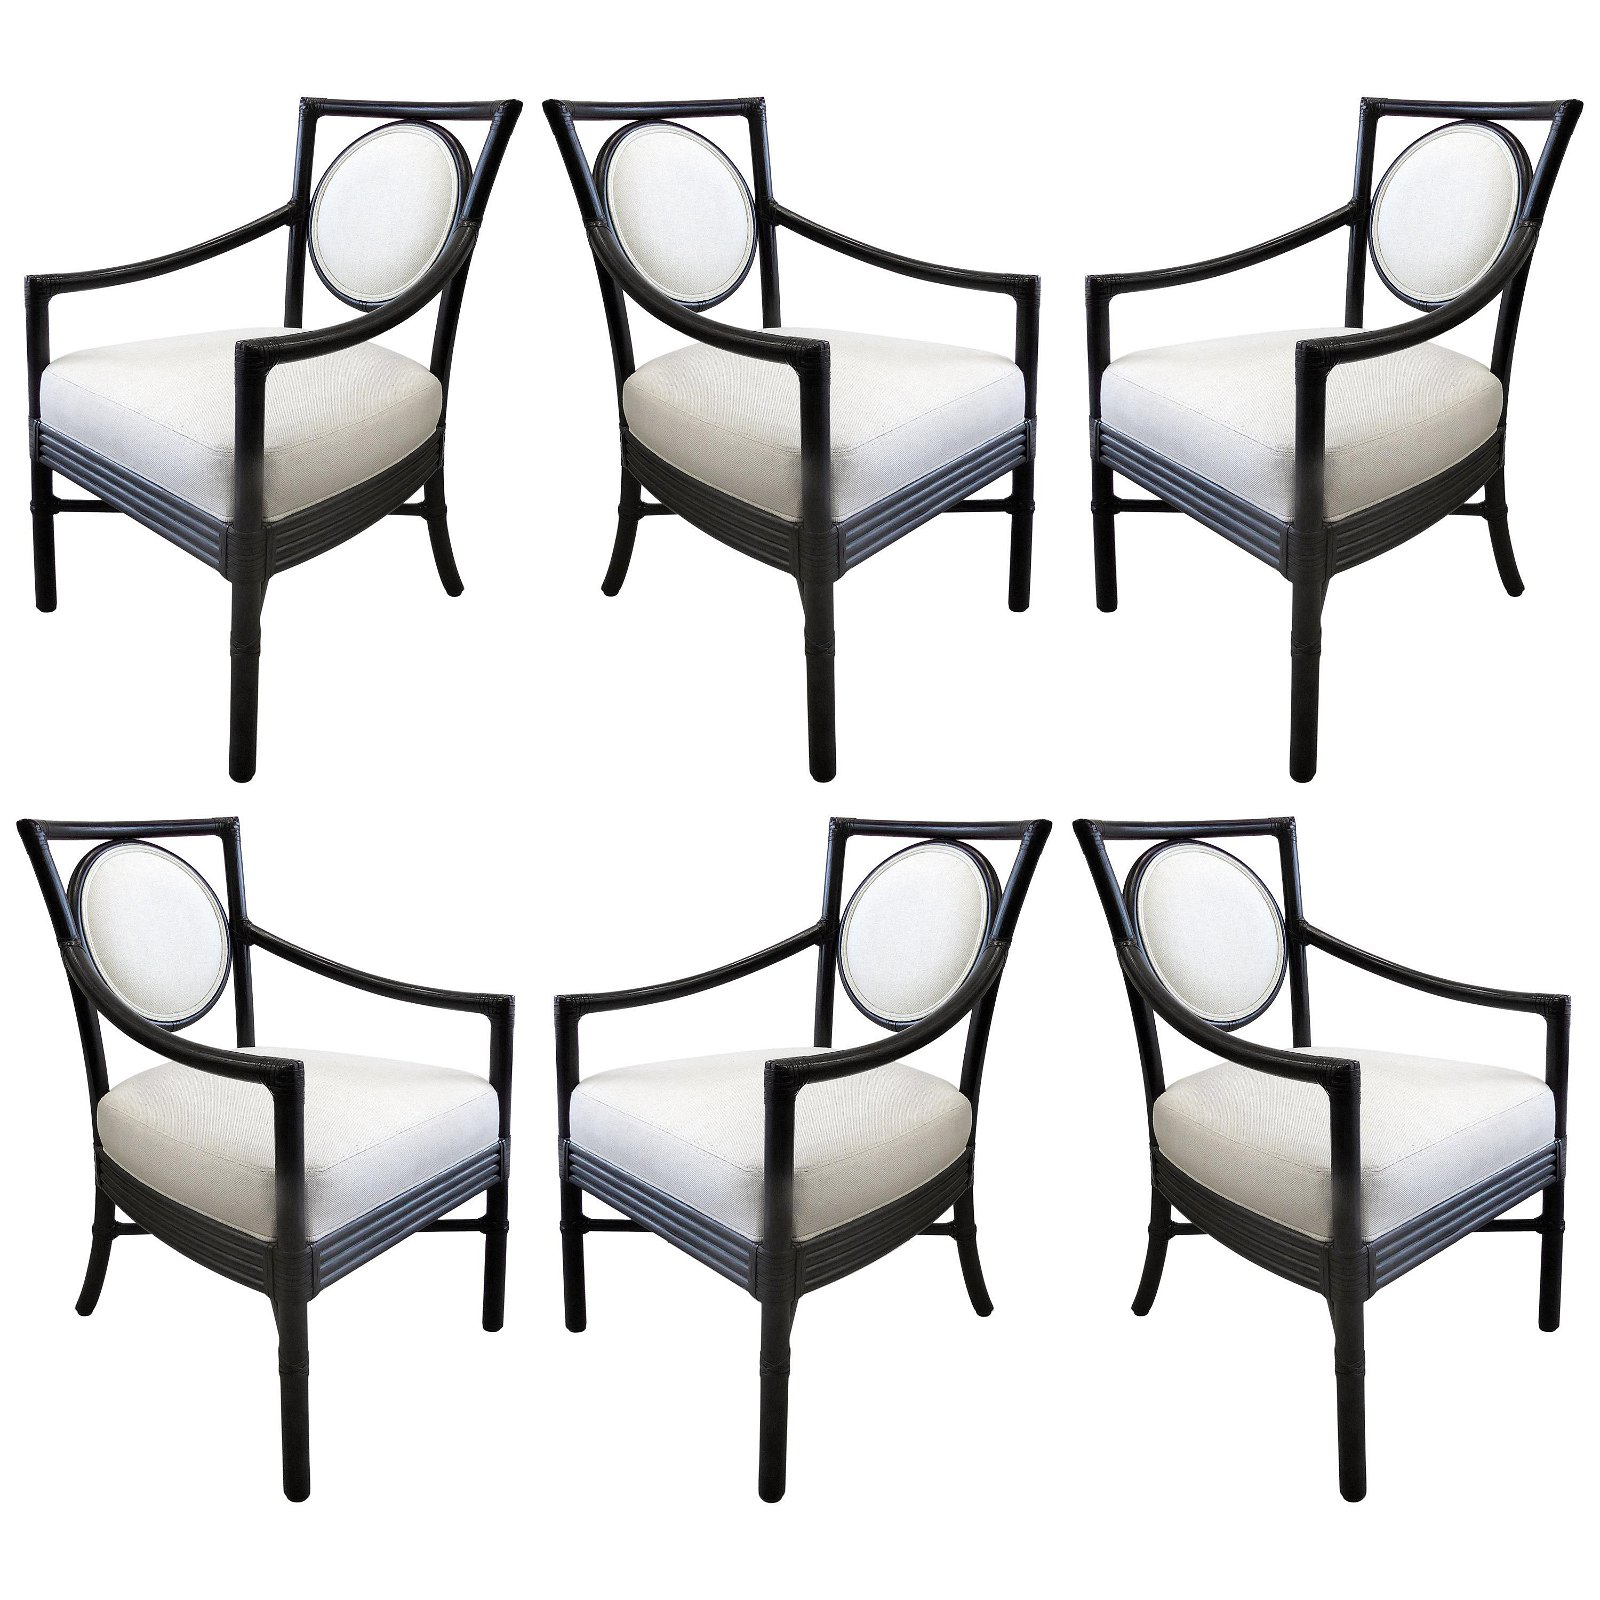 McGuire Rattan Dining Chairs with Leather Bindings in